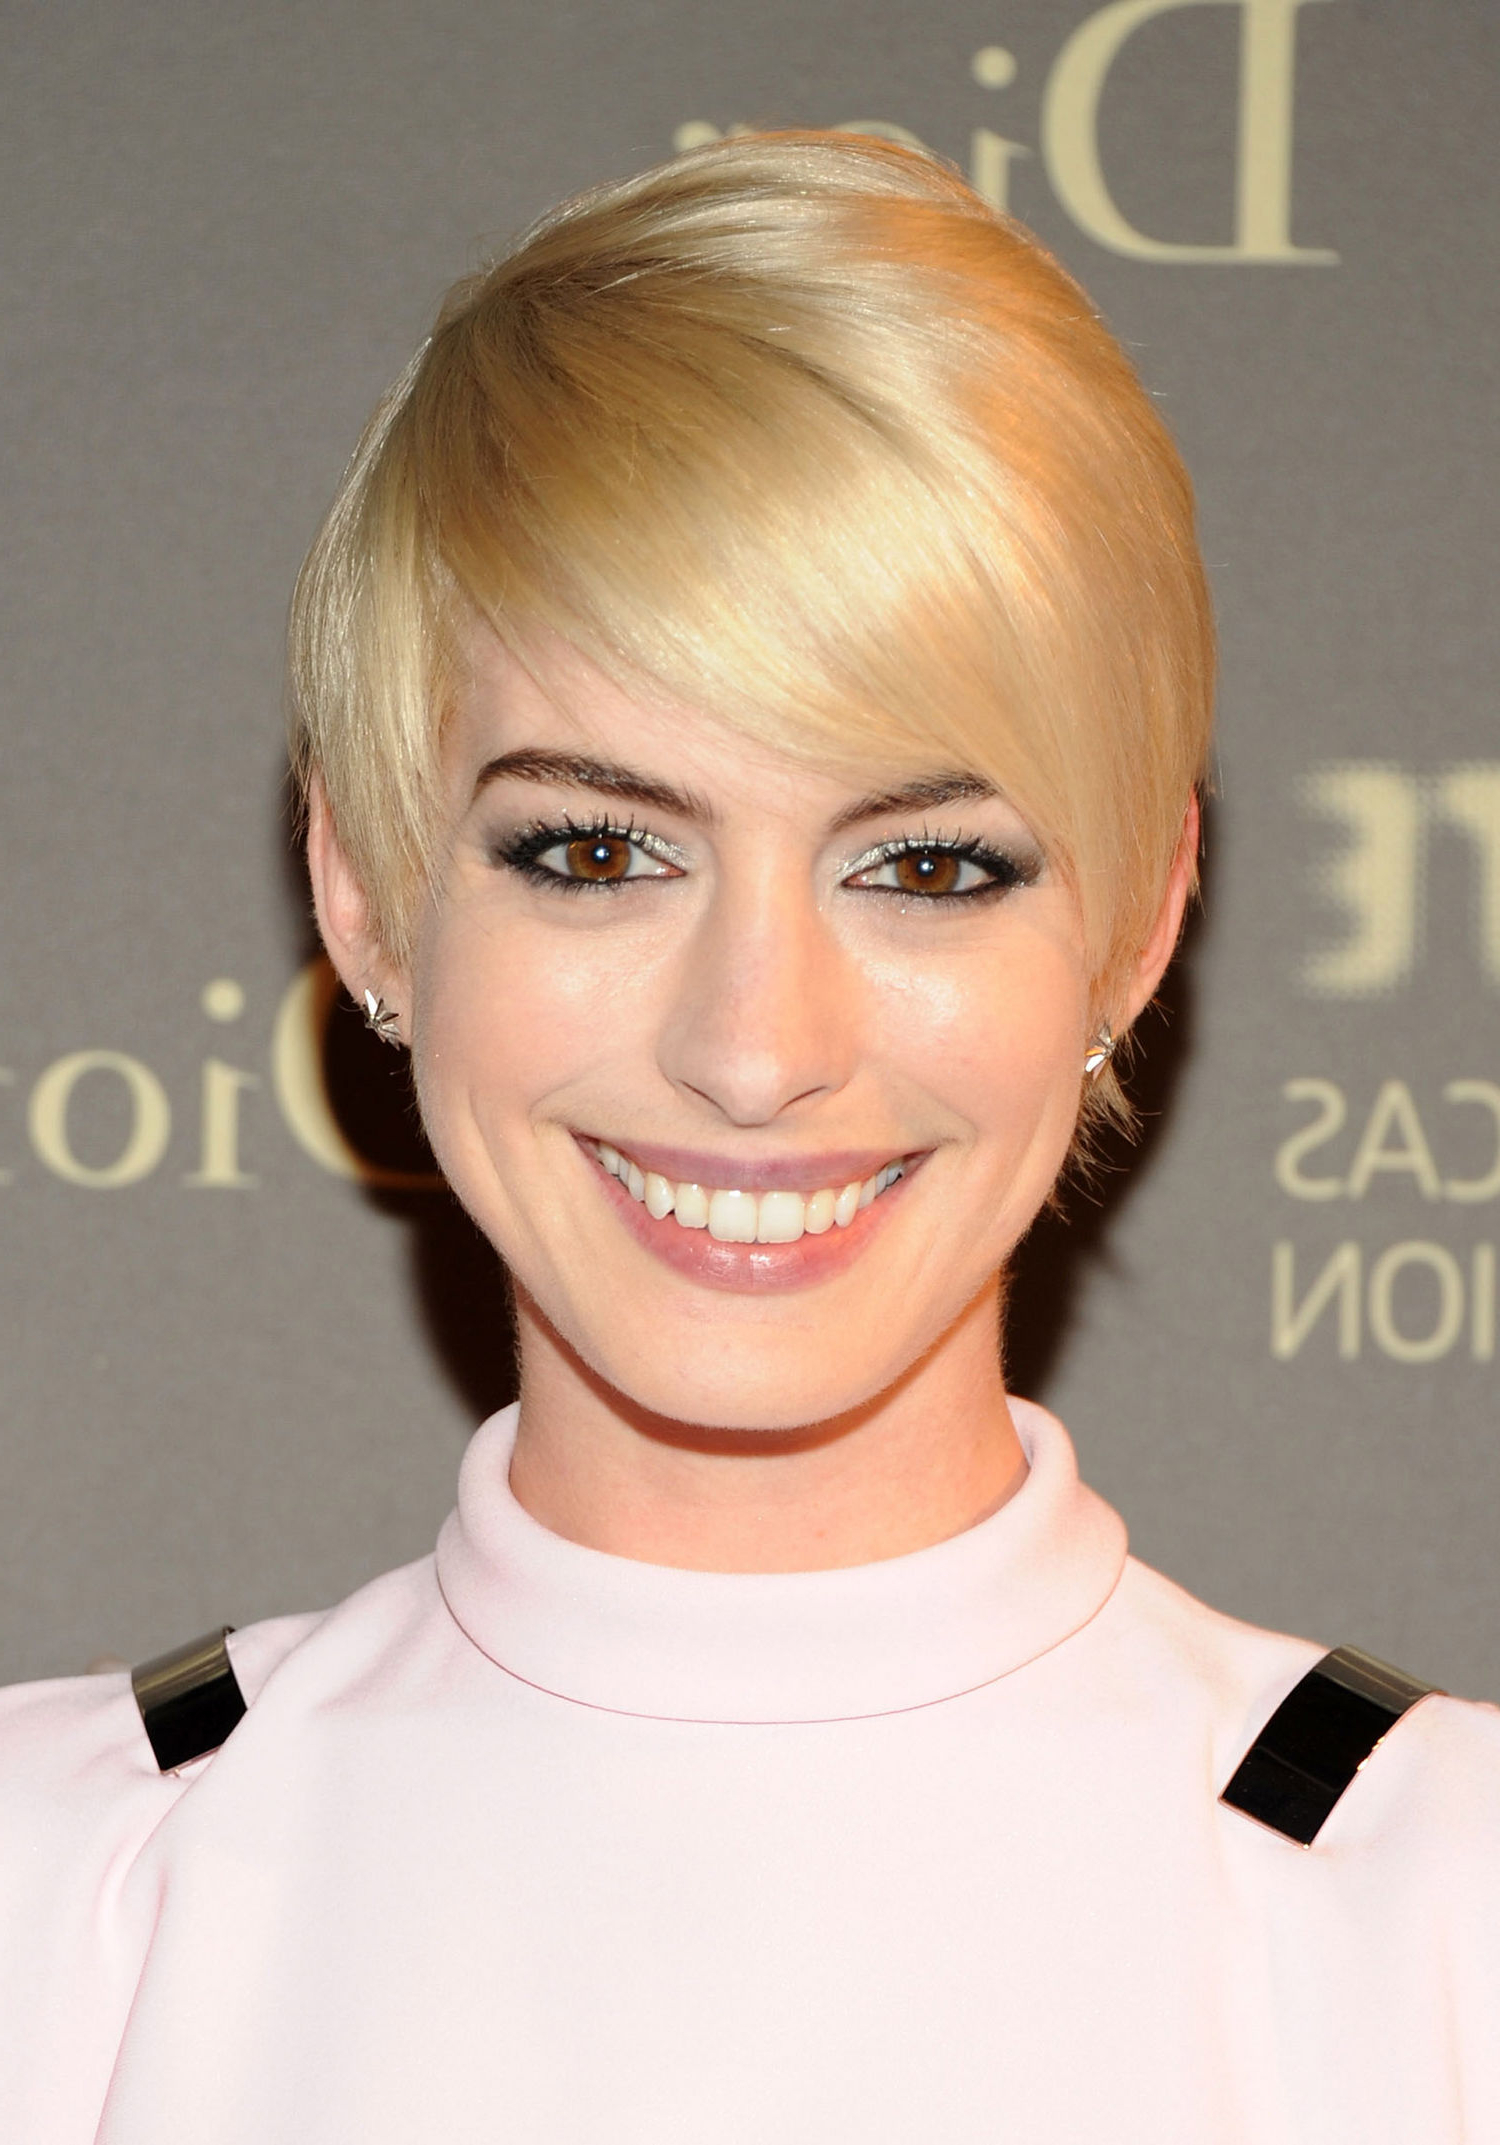 Top 100 Short Hairstyles For Women – Herinterest/ For Strawberry Blonde Short Hairstyles (View 20 of 25)